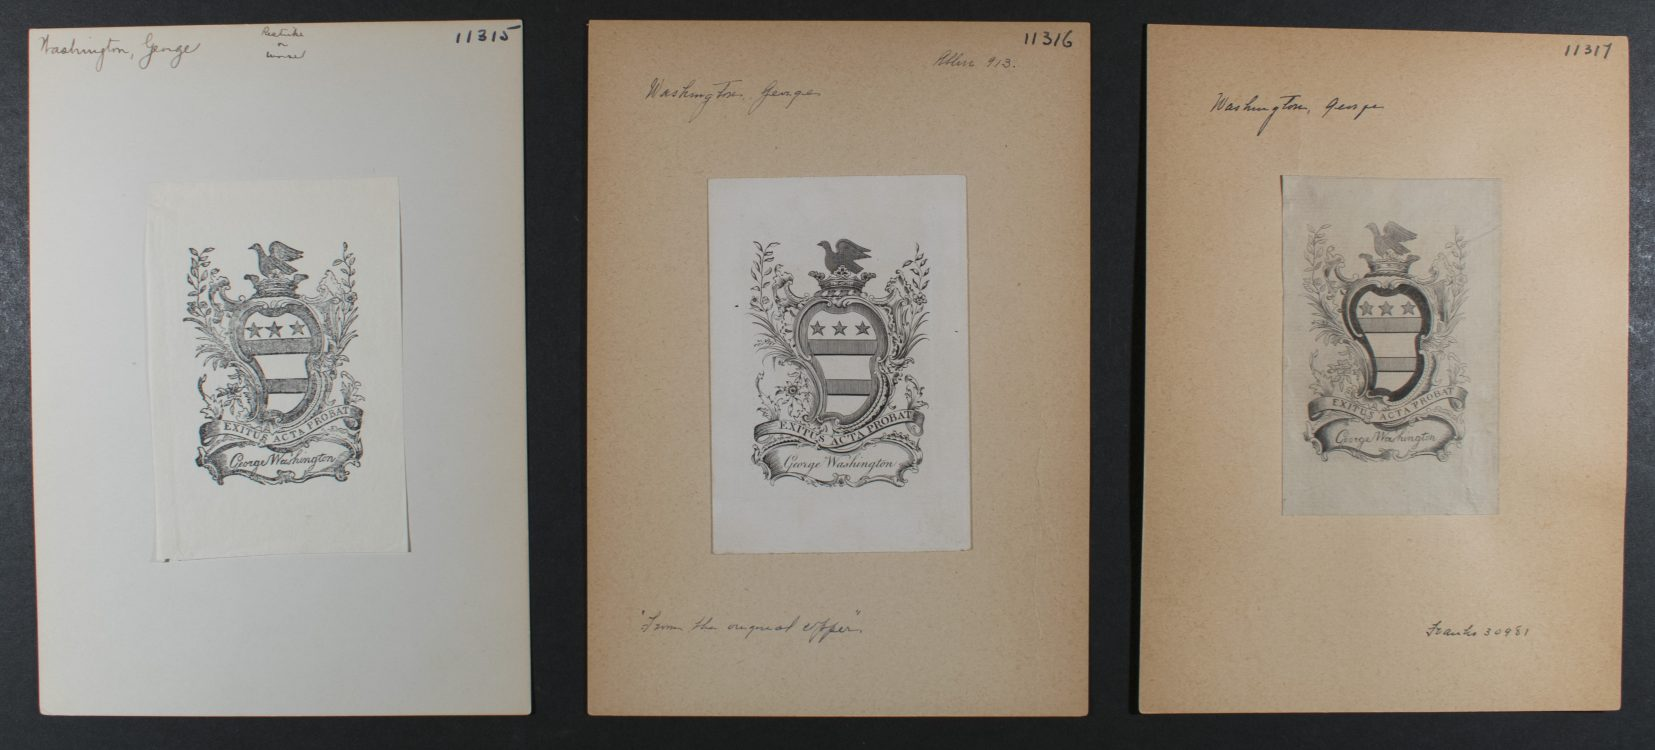 Counterfeits and/or Facsimiles of George Washington's Bookplate